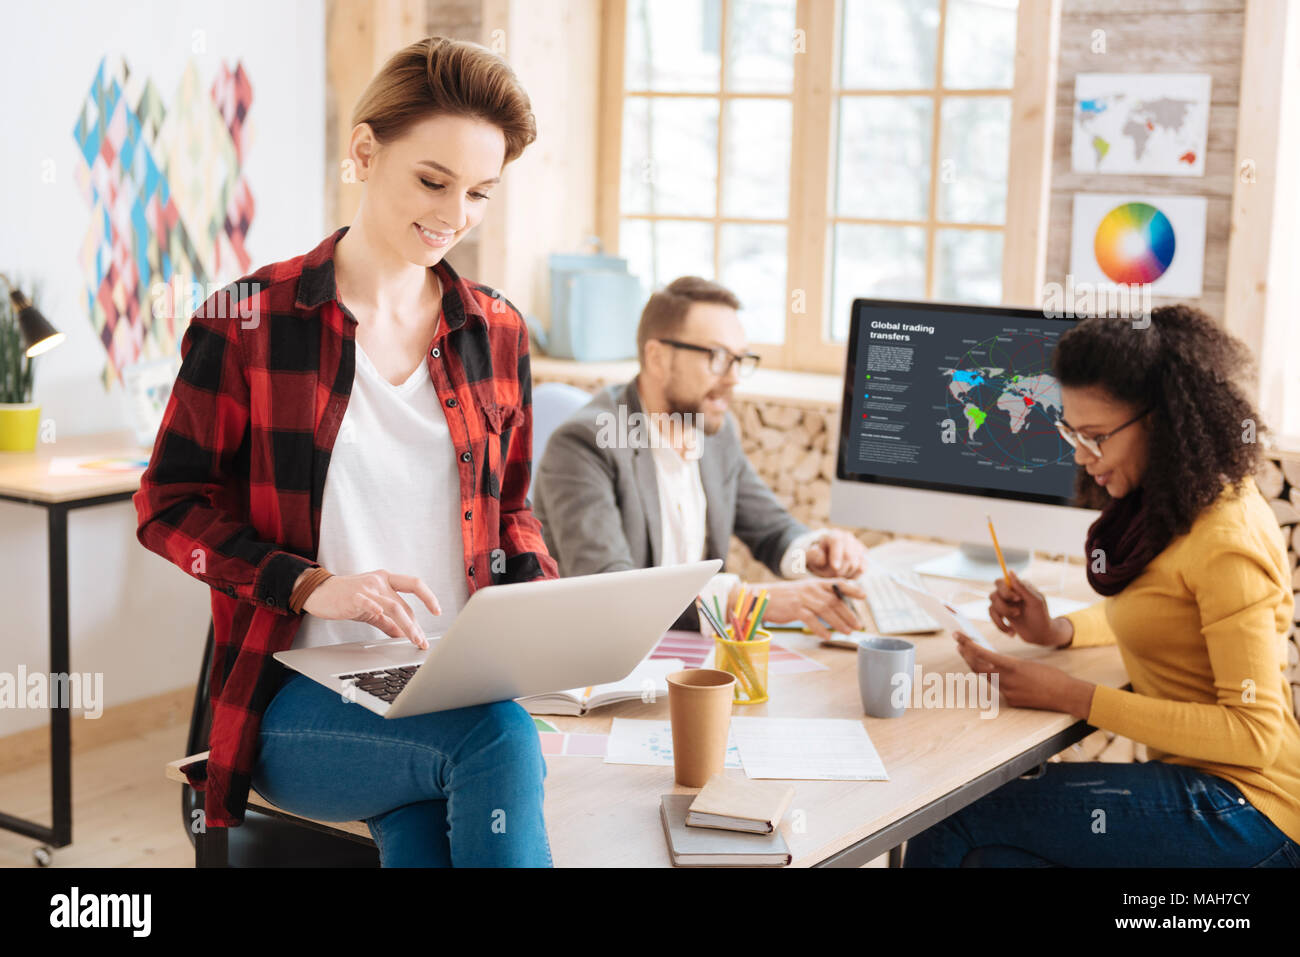 Content woman working in office with her co-workers - Stock Image